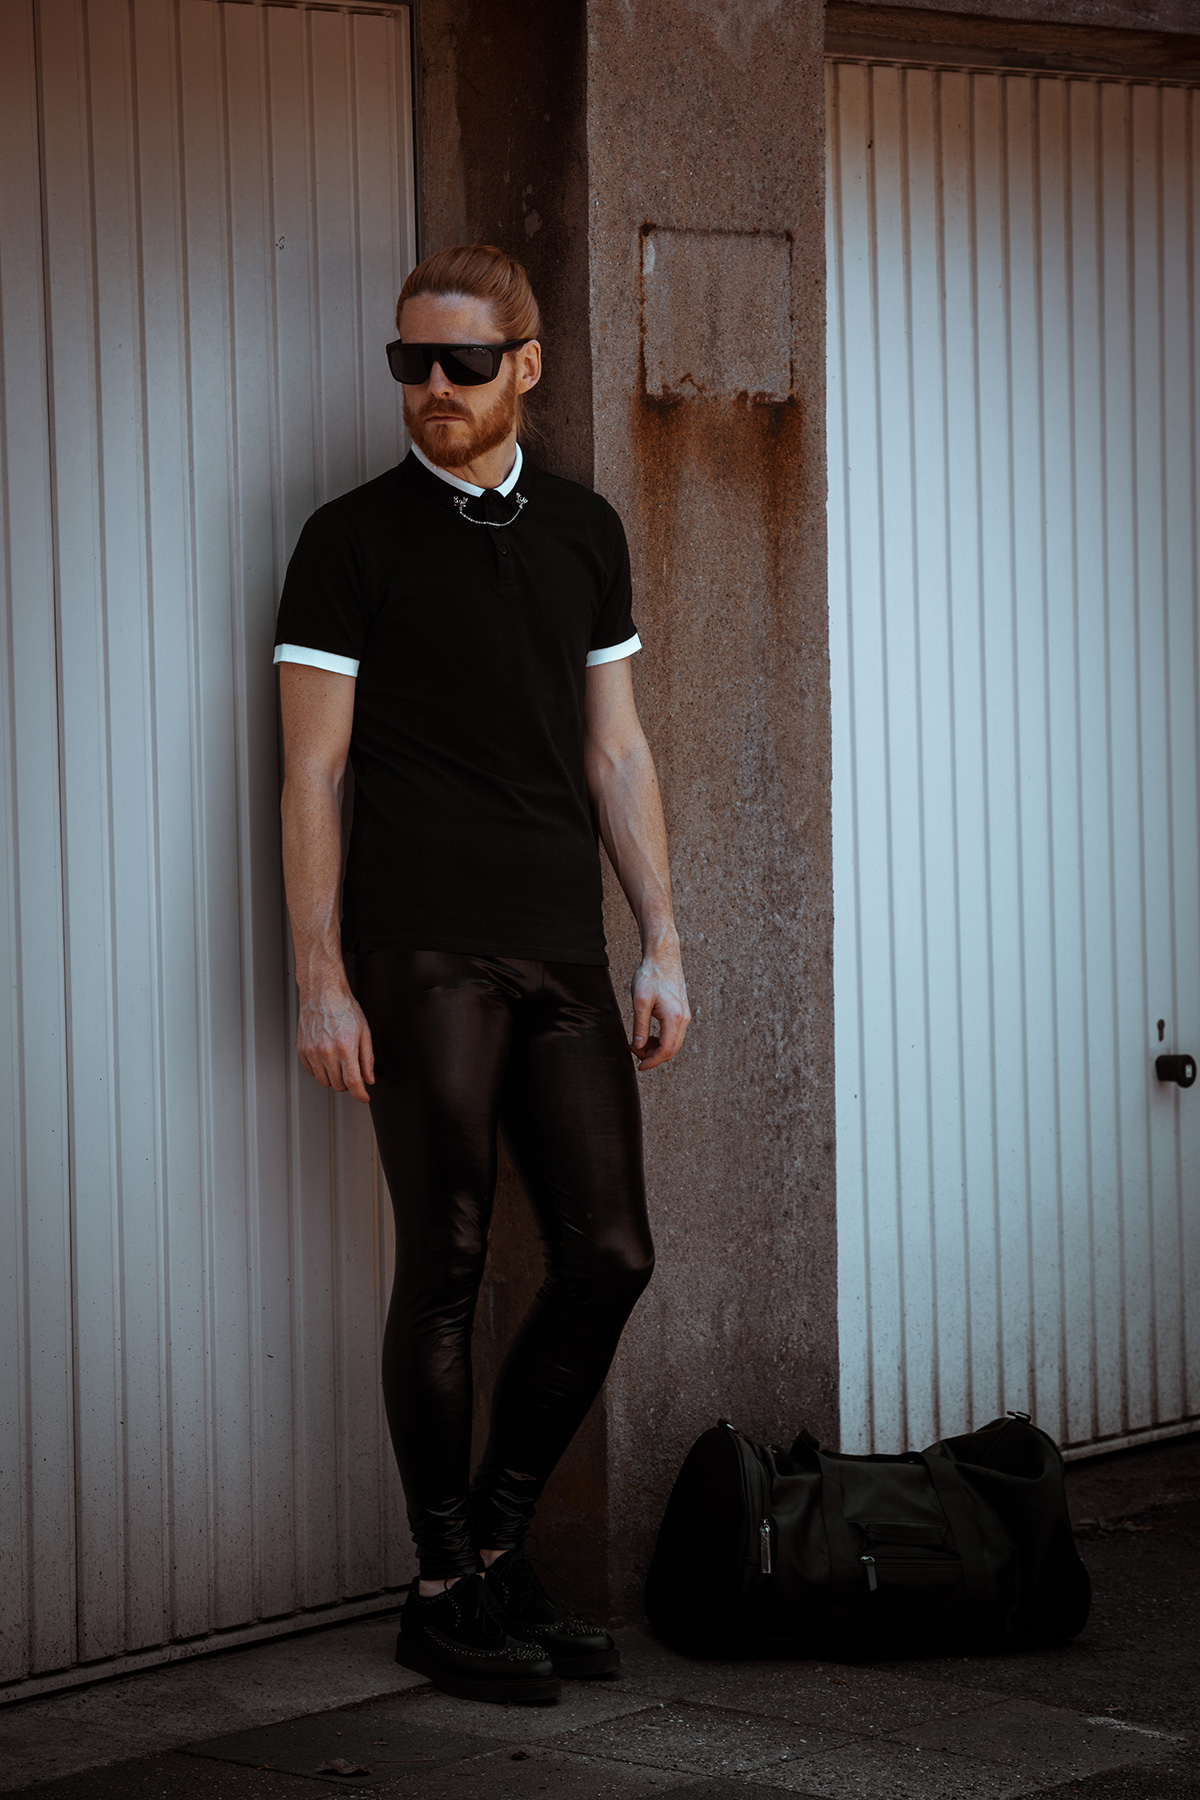 Meggings-Lack-Fetish-Gay-Malefashion-Sommerlook-Poloshirt